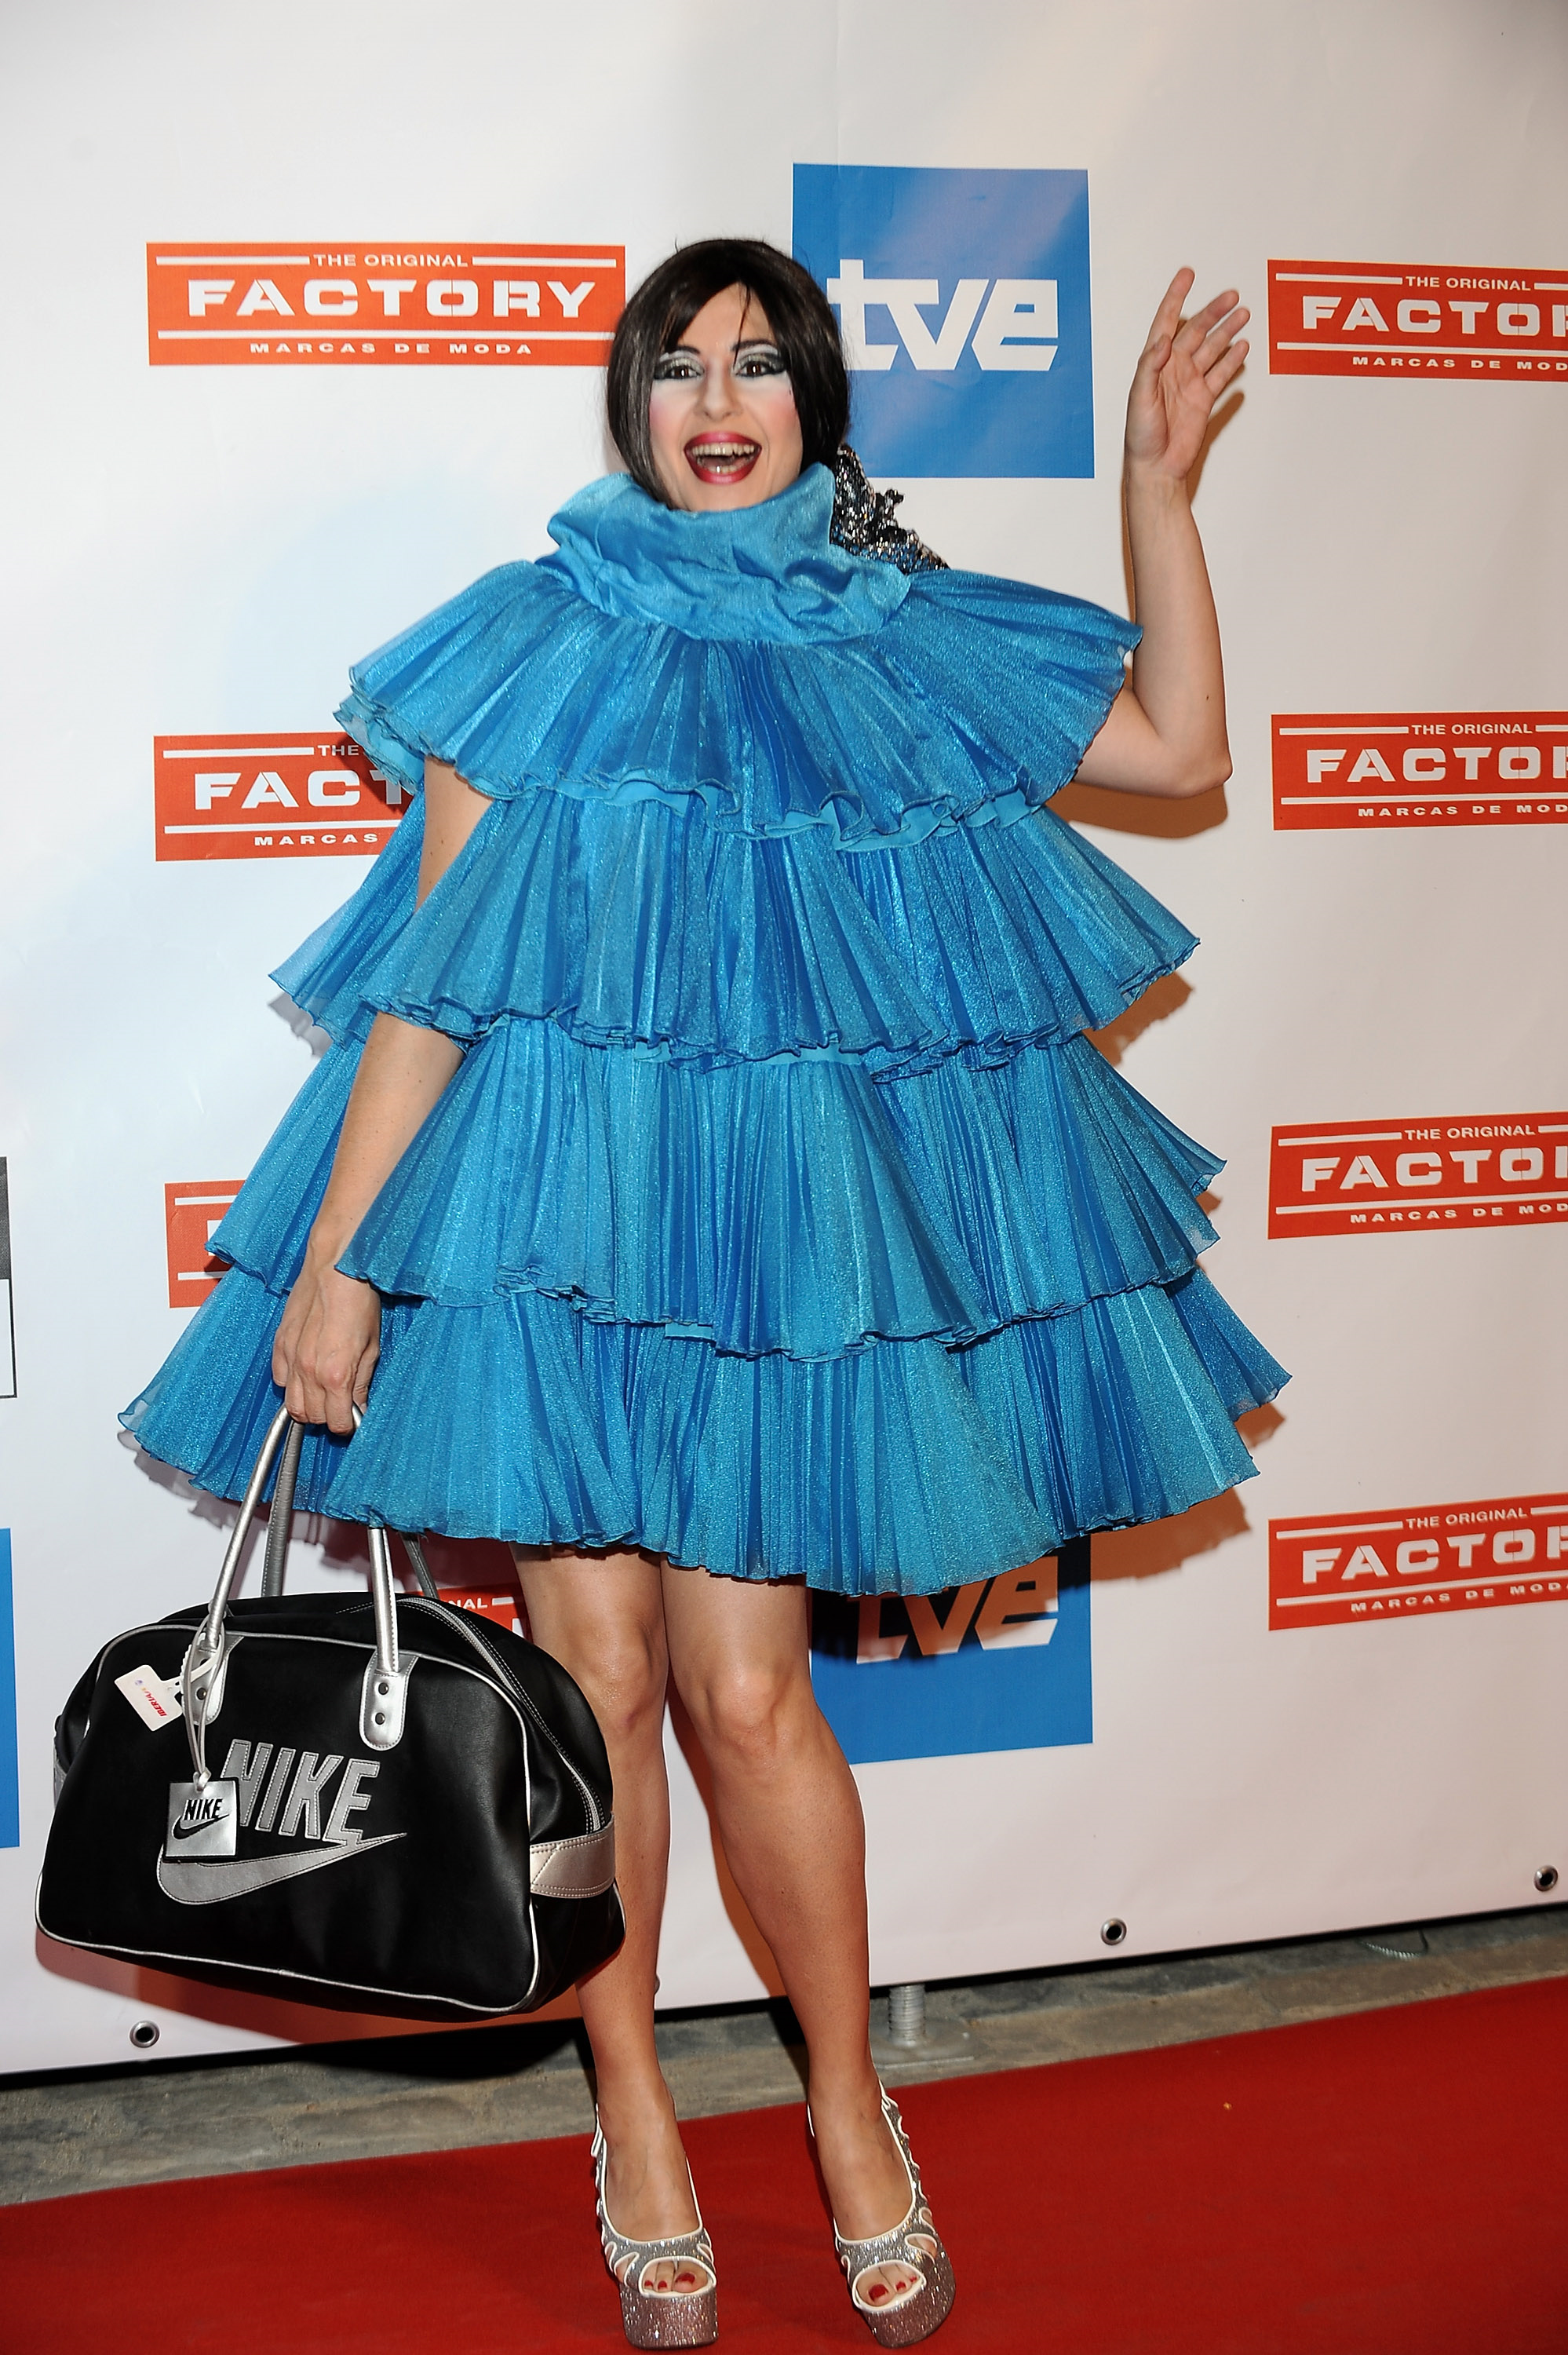 Forum on this topic: Crazy Celebrity Outfits We'll Never Forget, crazy-celebrity-outfits-well-never-forget/